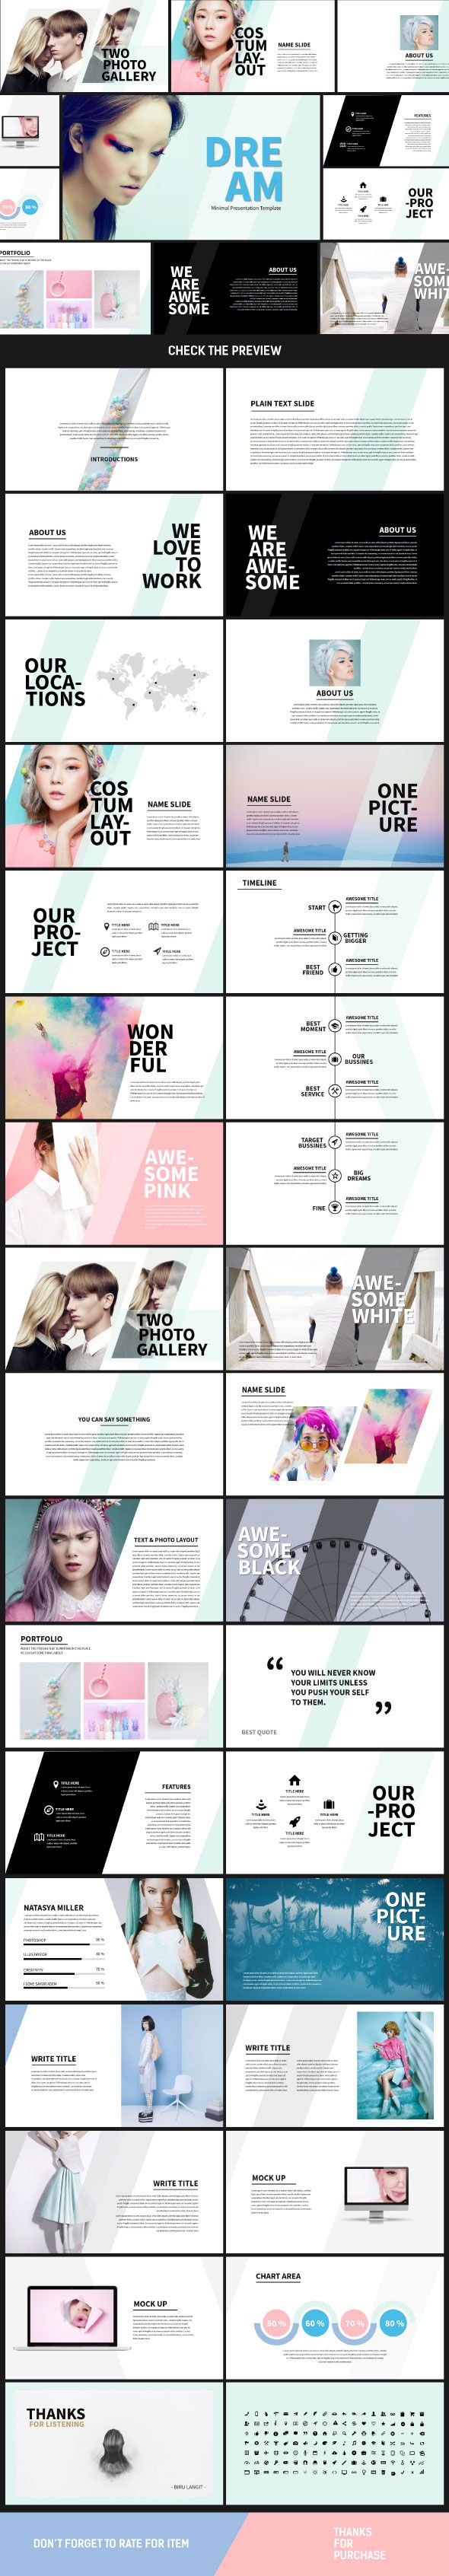 Dream Presentation Pptx Template - Miscellaneous PowerPoint Templates